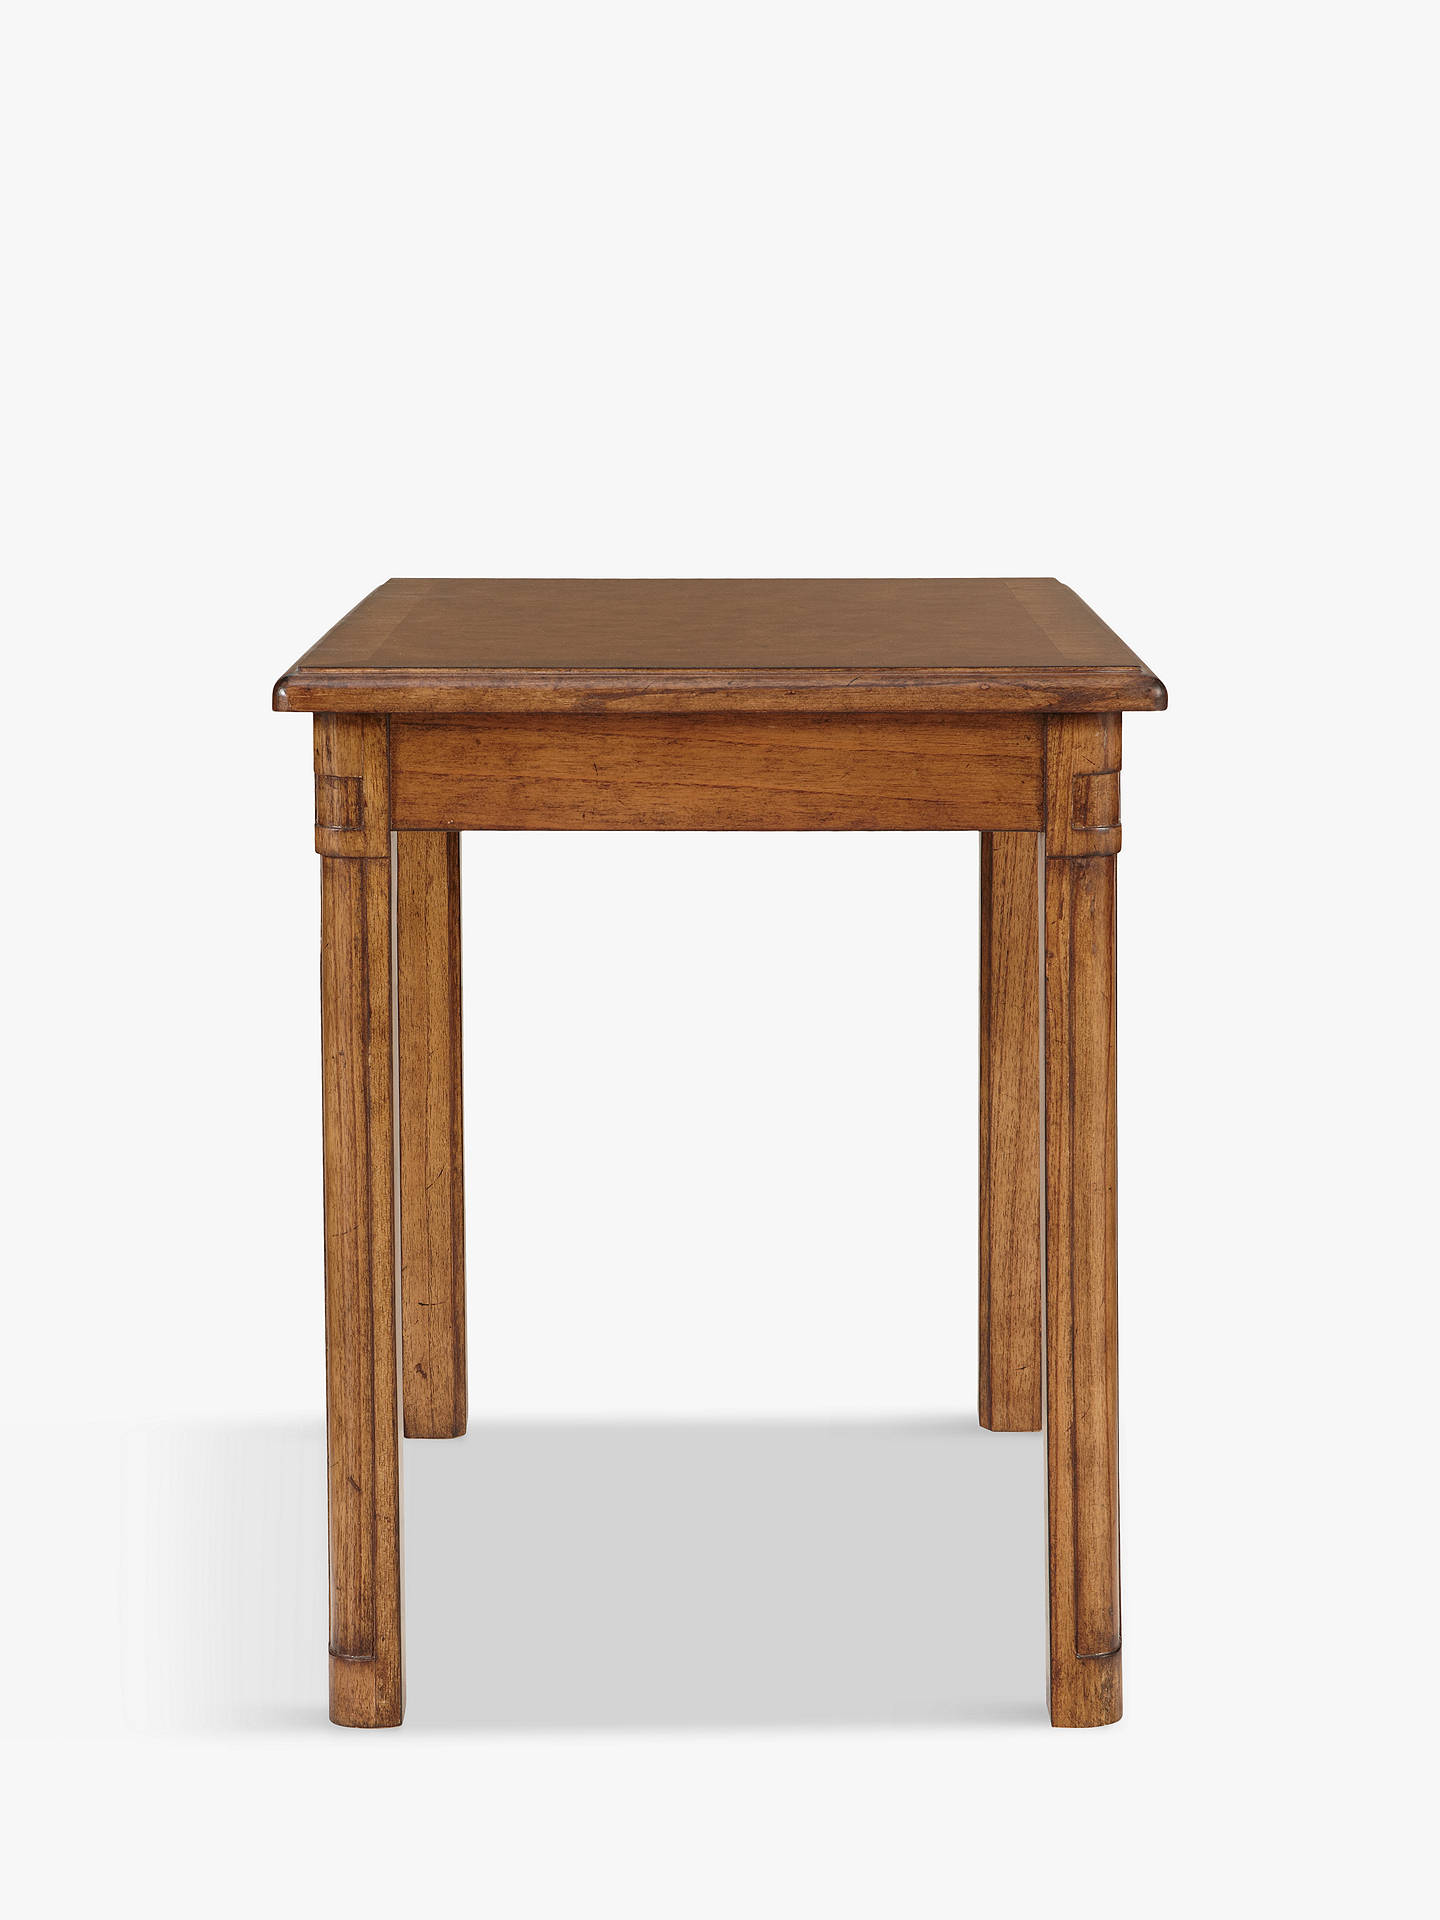 BuyJohn Lewis & Partners Hemingway Nest of 3 Tables Online at johnlewis.com